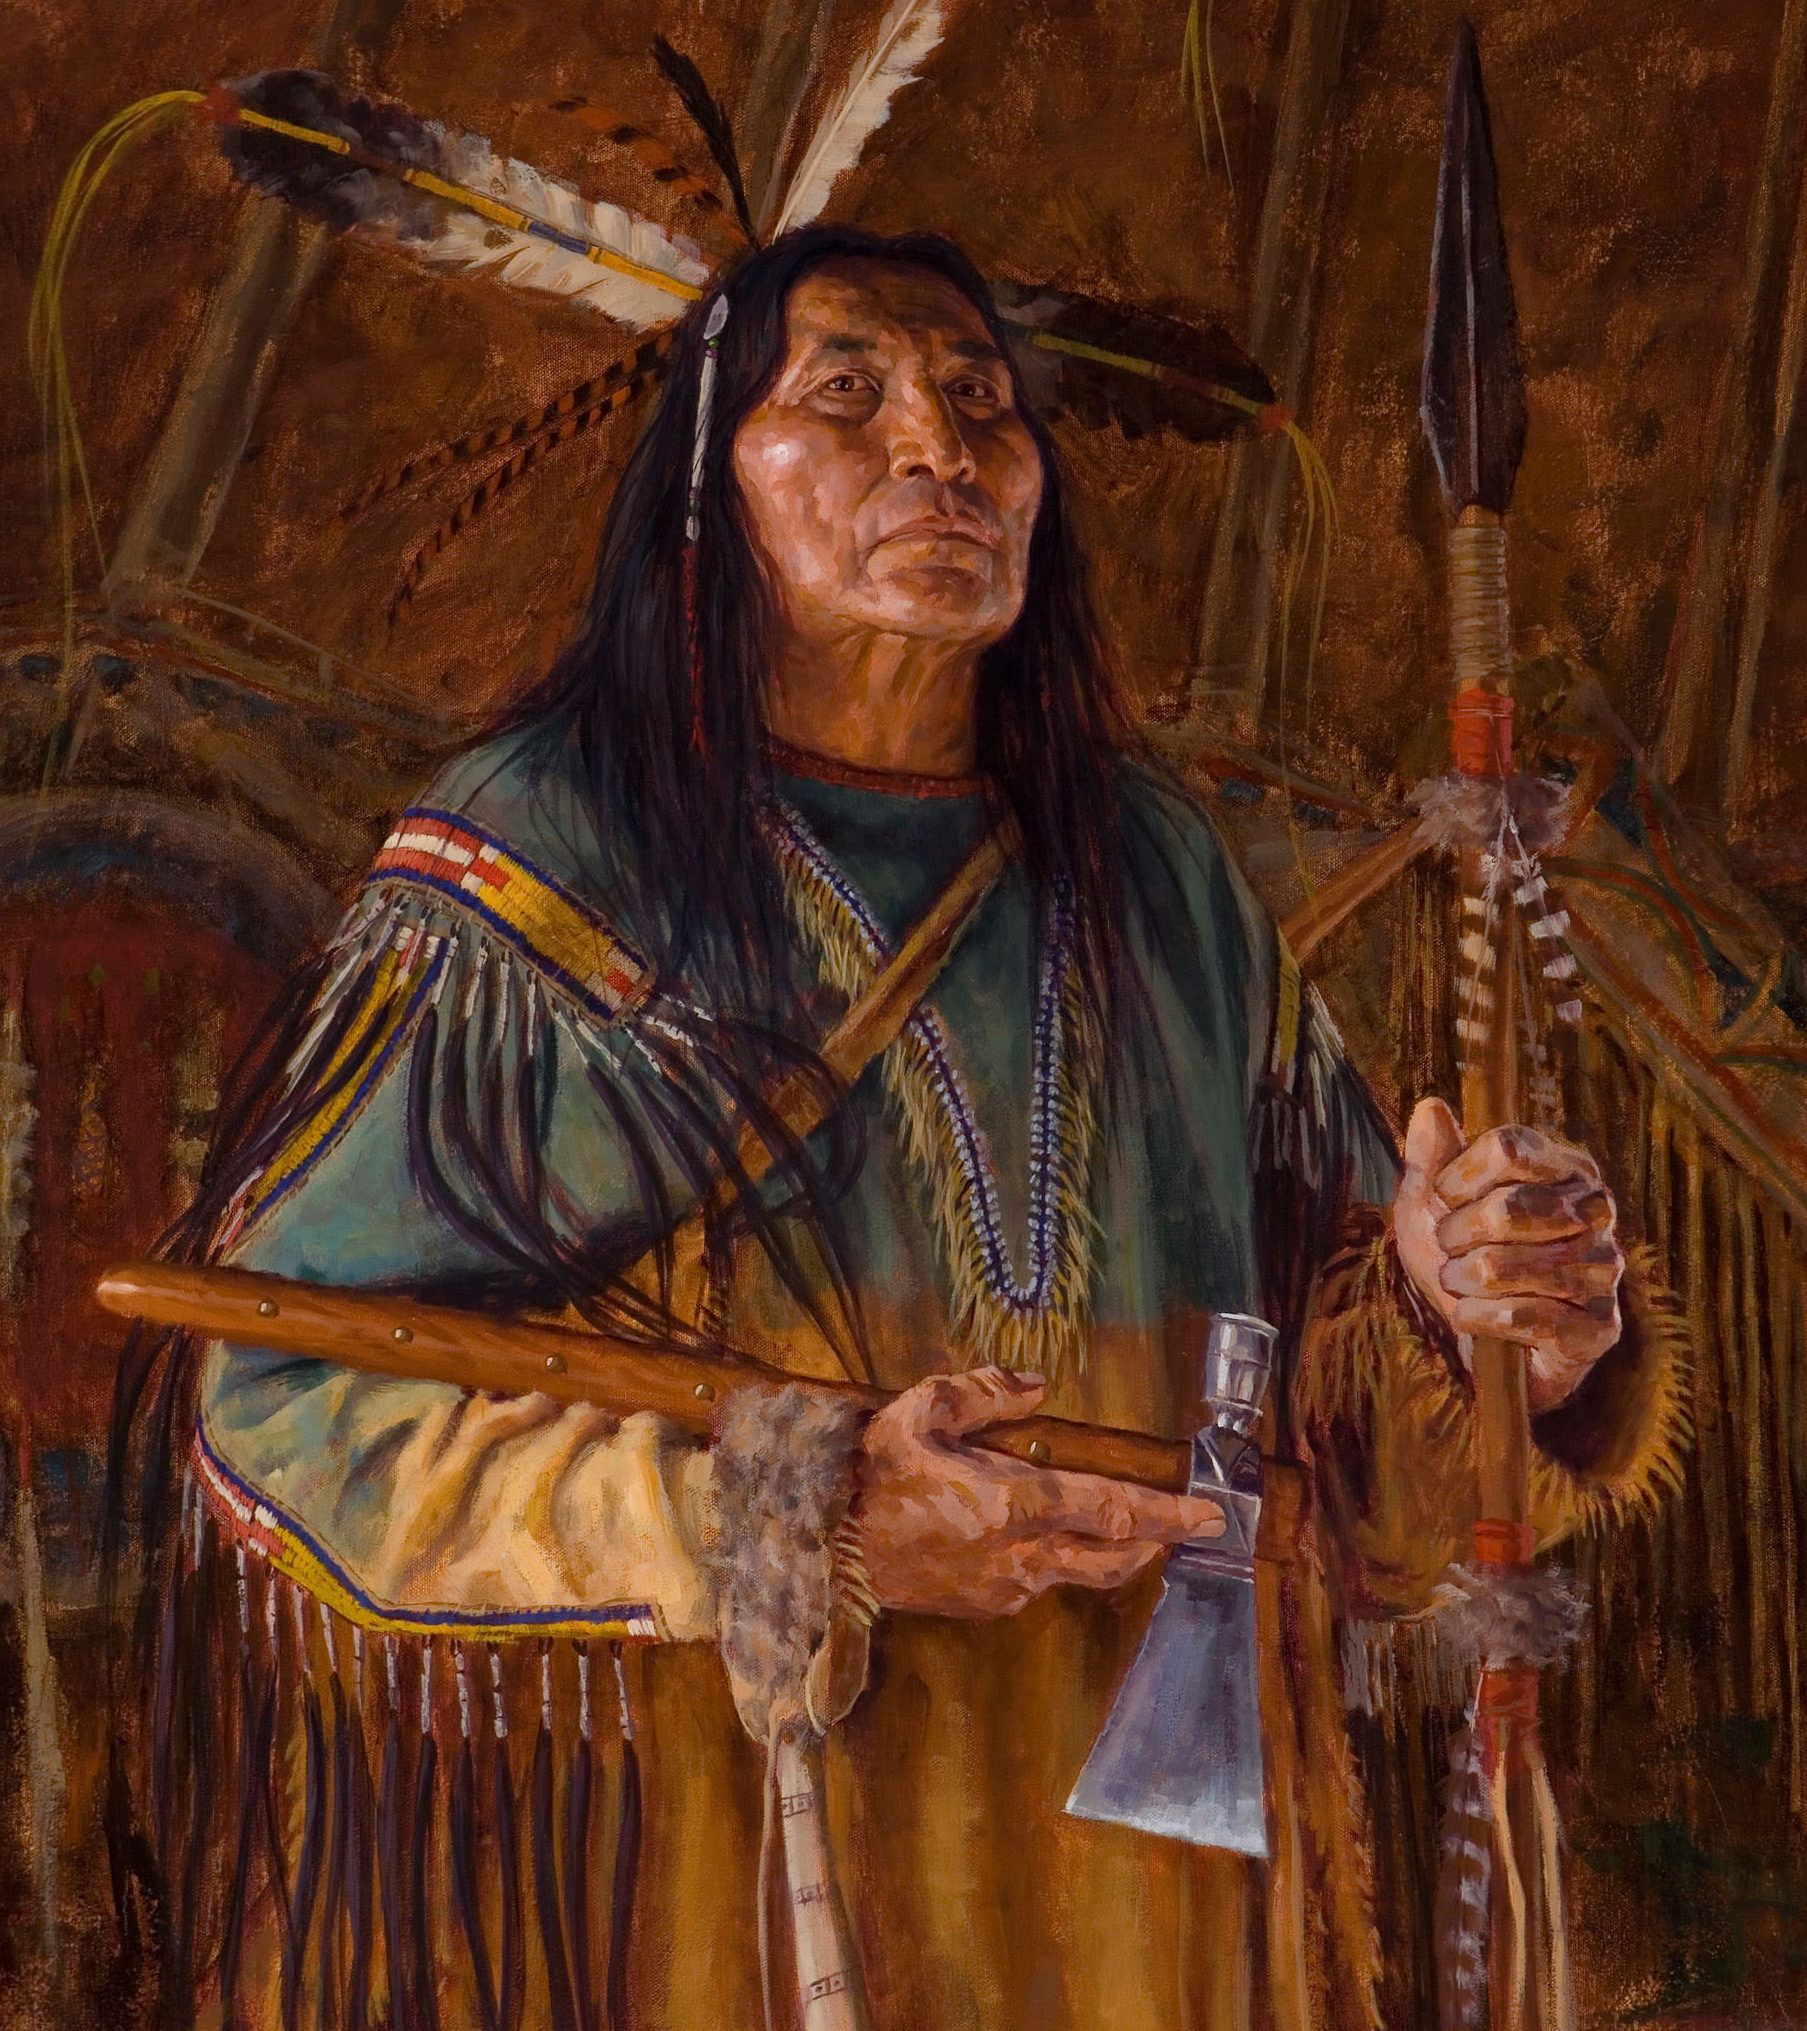 700N-ARTICLES OF THE CHEYENNE-CHEYENNE-OIL ON CANVAS-2016-32X28-9,700.00 Beartooth